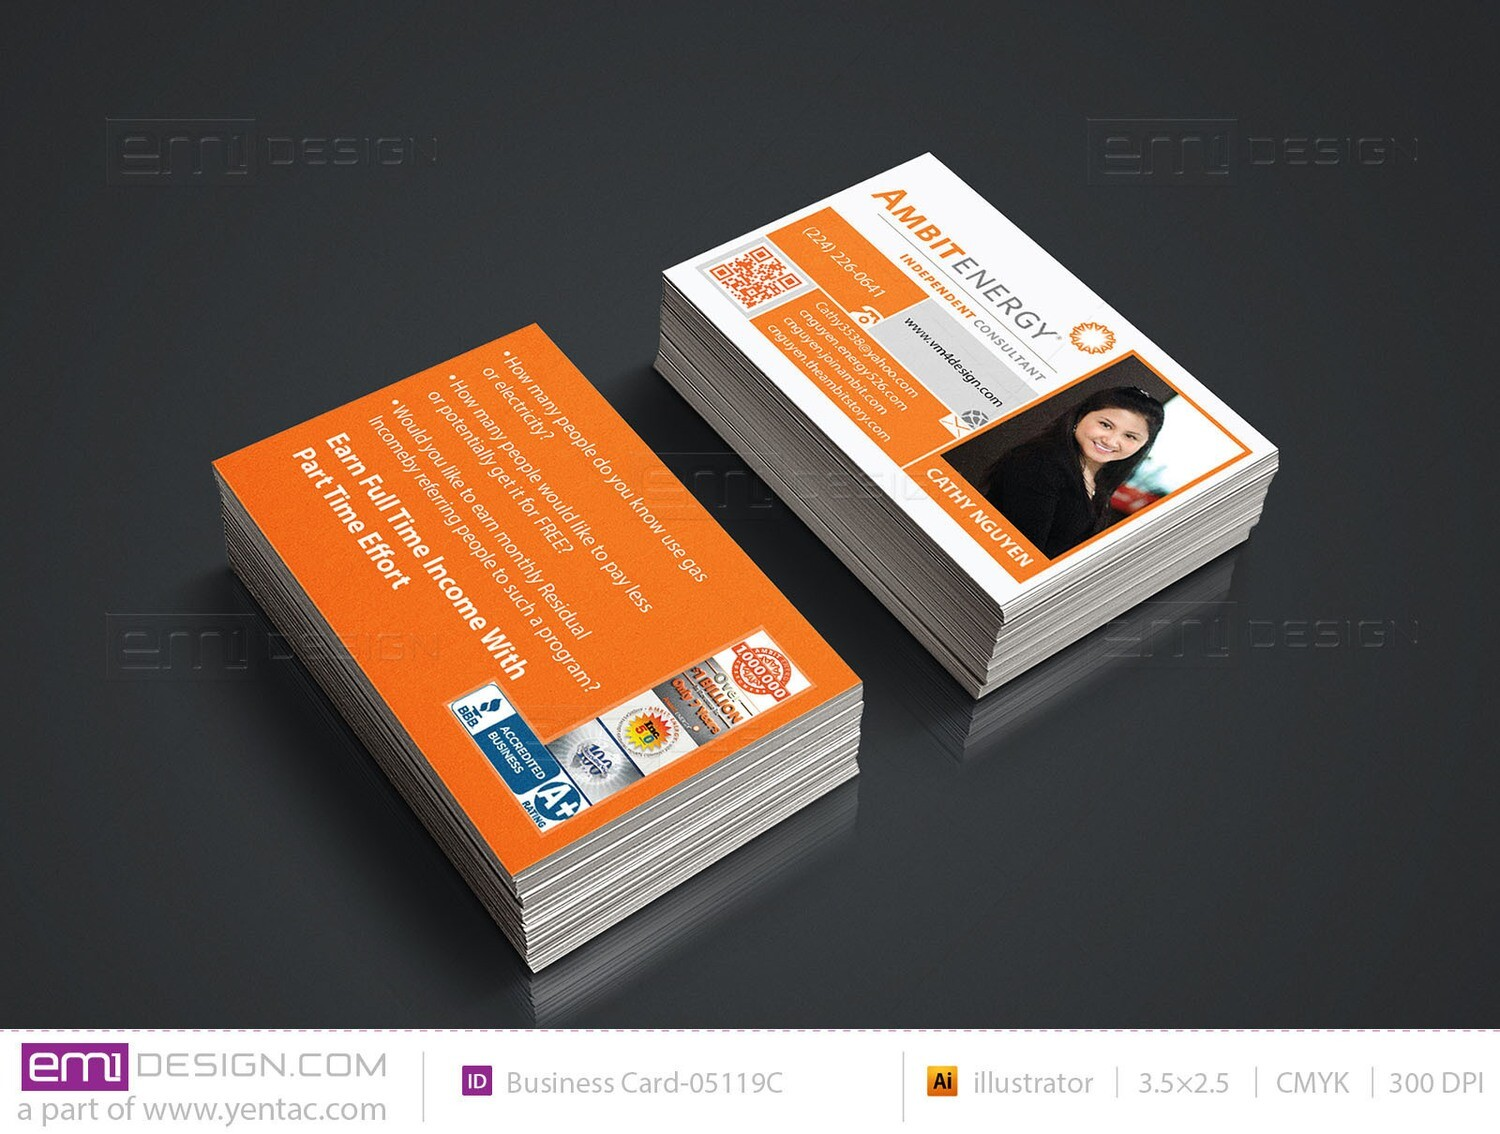 Business Card - Template BusCard-05119C